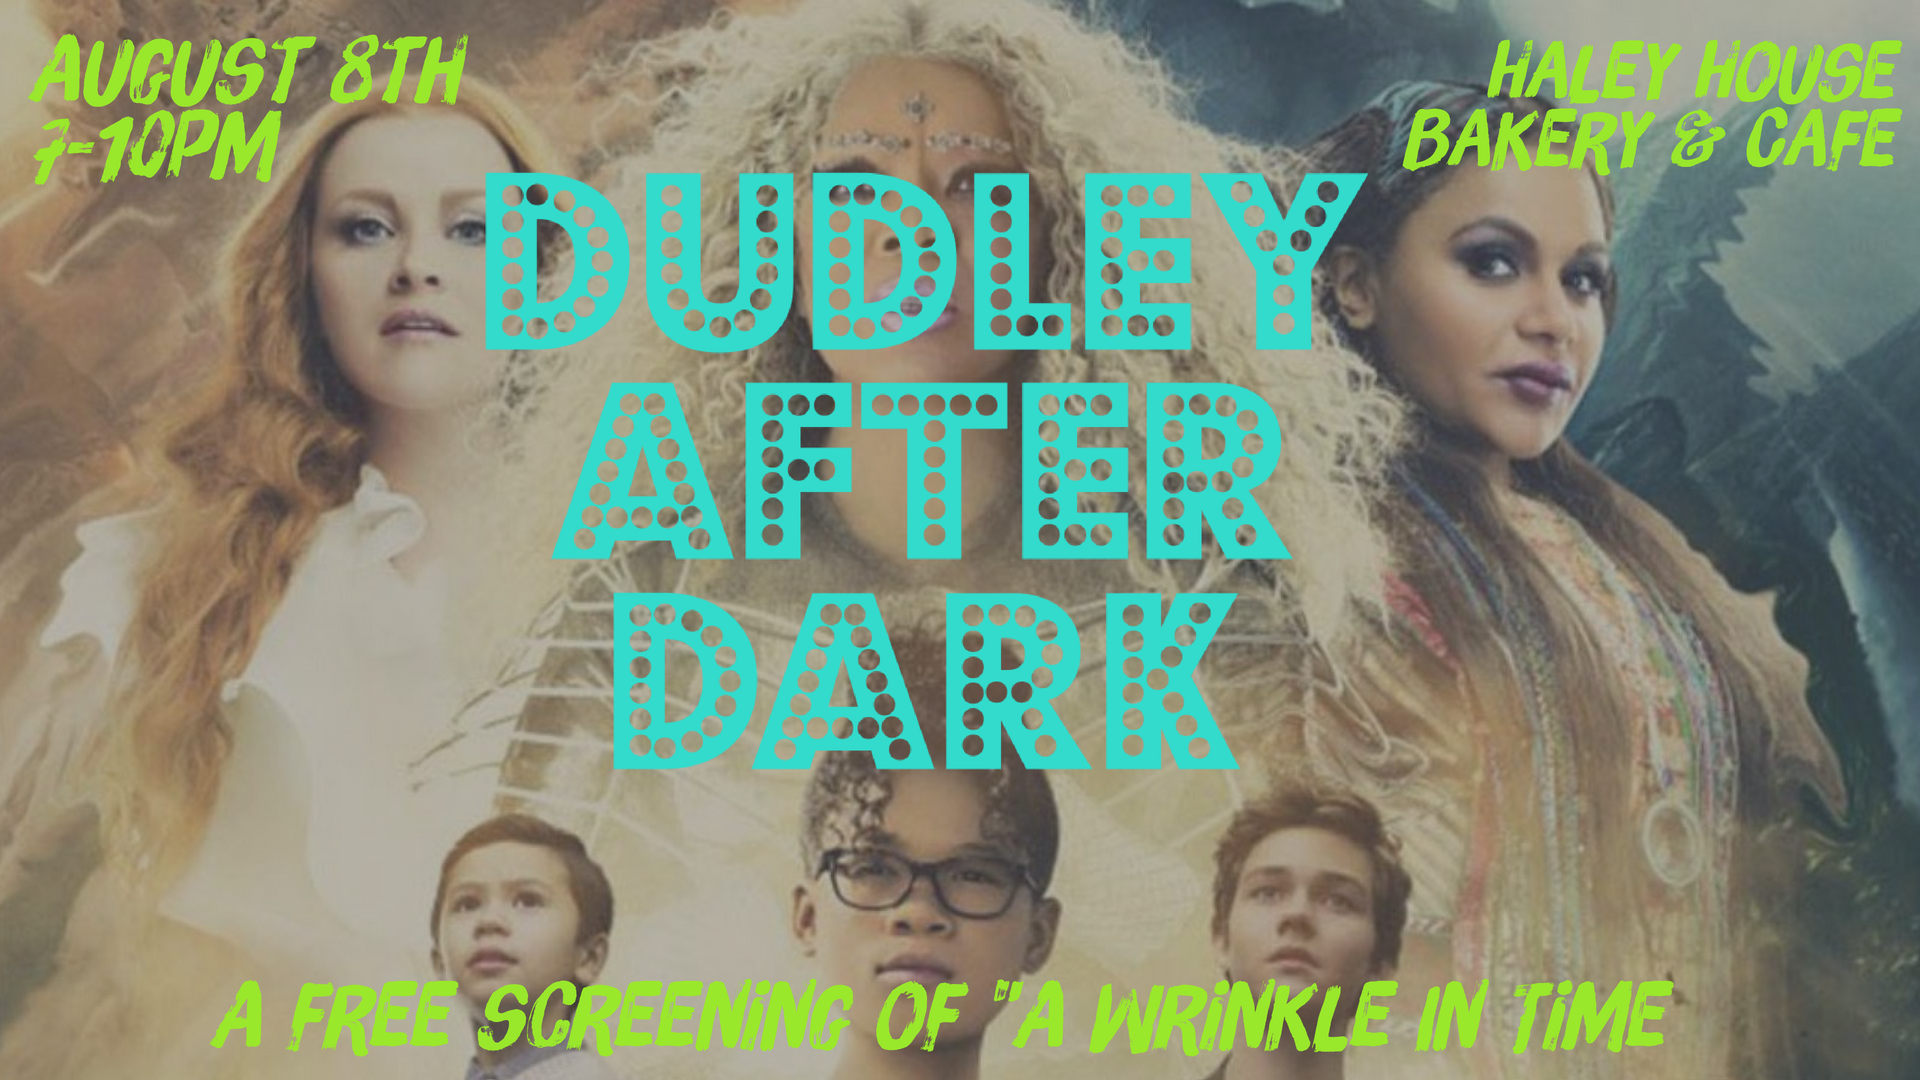 Dudley After Dark A Wrinkle In Time 08 08 18